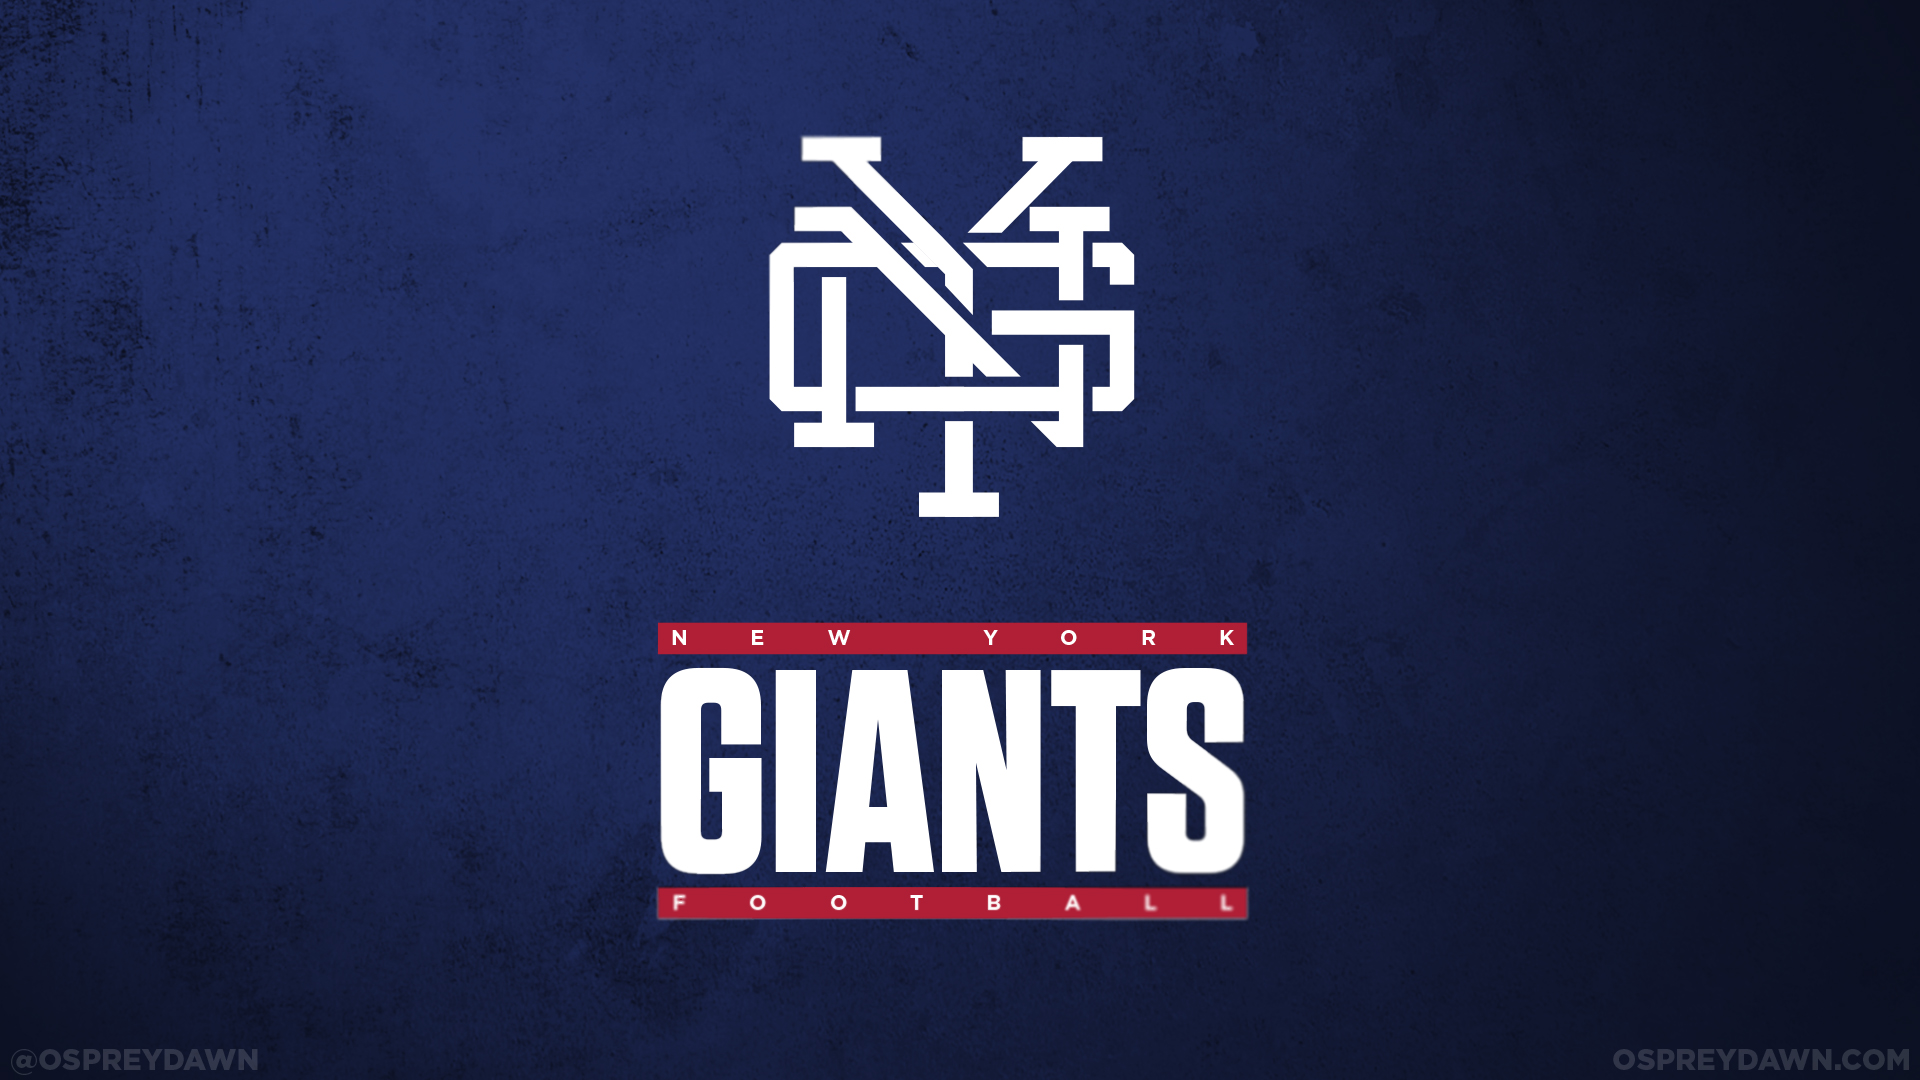 New York Giants Full HD Wallpaper And Background Image